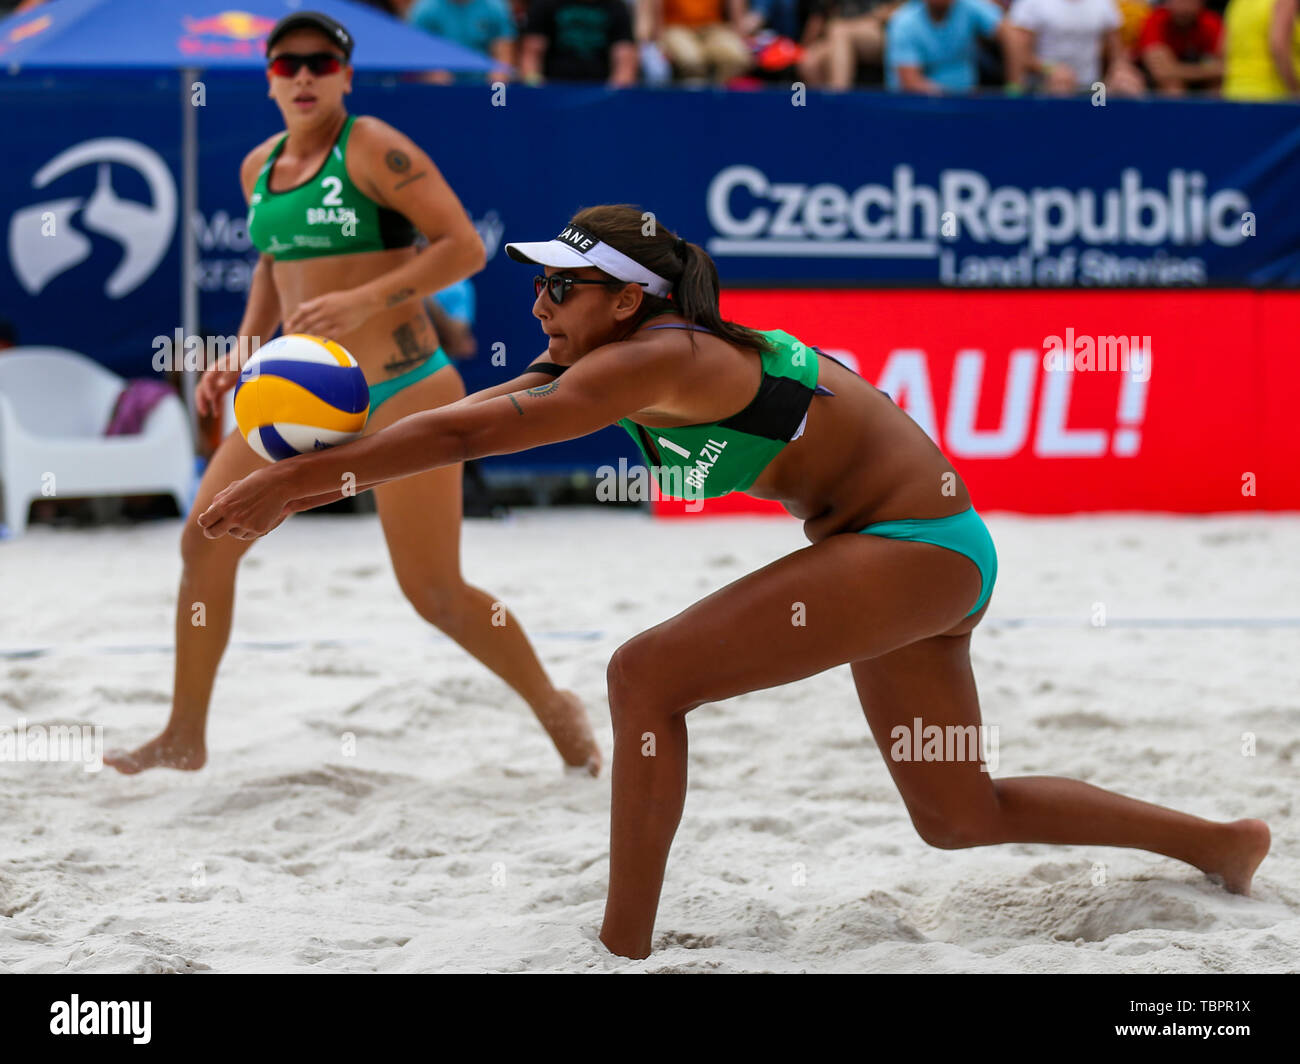 Ostrava, Czech Republic. 01st June, 2019. L-R Rebecca Cavalcanti Barbosa Silva and Ana Patricia Silva Ramos (Brazil) in action during the four-star J&T Banka Ostrava Beach Open 2019, part of the FIVB Beach Volleyball World Tour, in Ostrava, Czech Republic, on June 1, 2019. Credit: Vladimir Prycek/CTK Photo/Alamy Live News Stock Photo